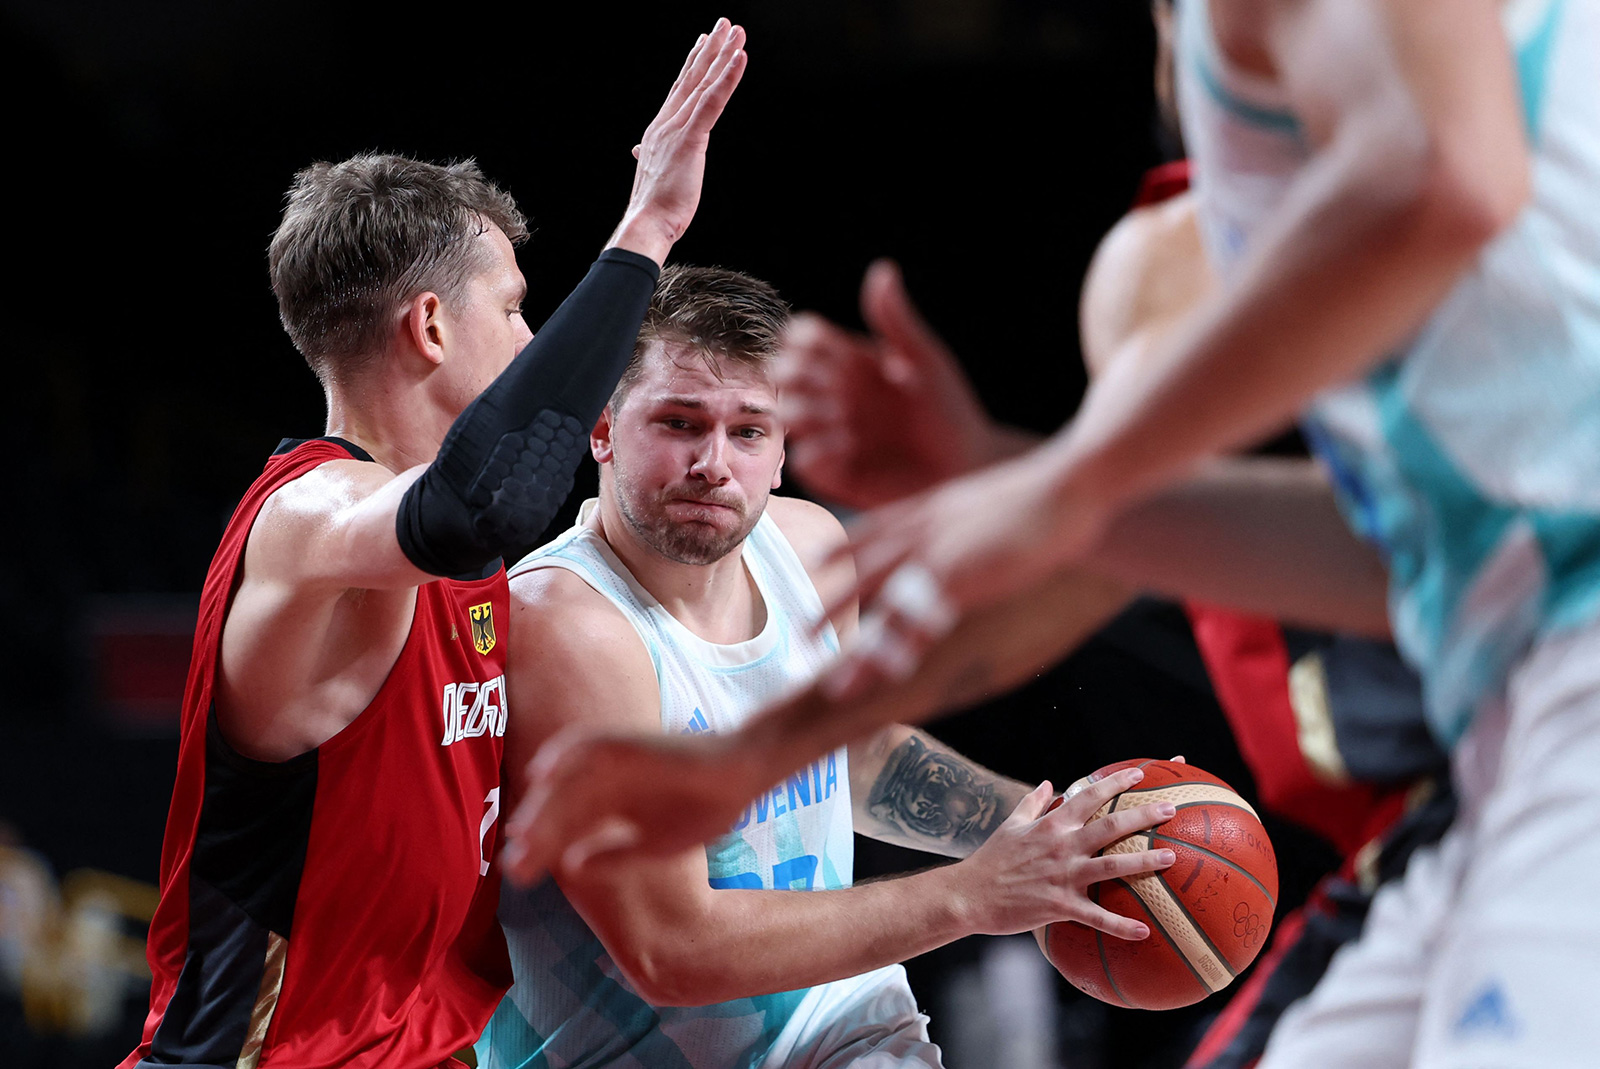 Slovenia's Luka Doncic dribbles past German players in the men's quarter-finals match on Tuesday.